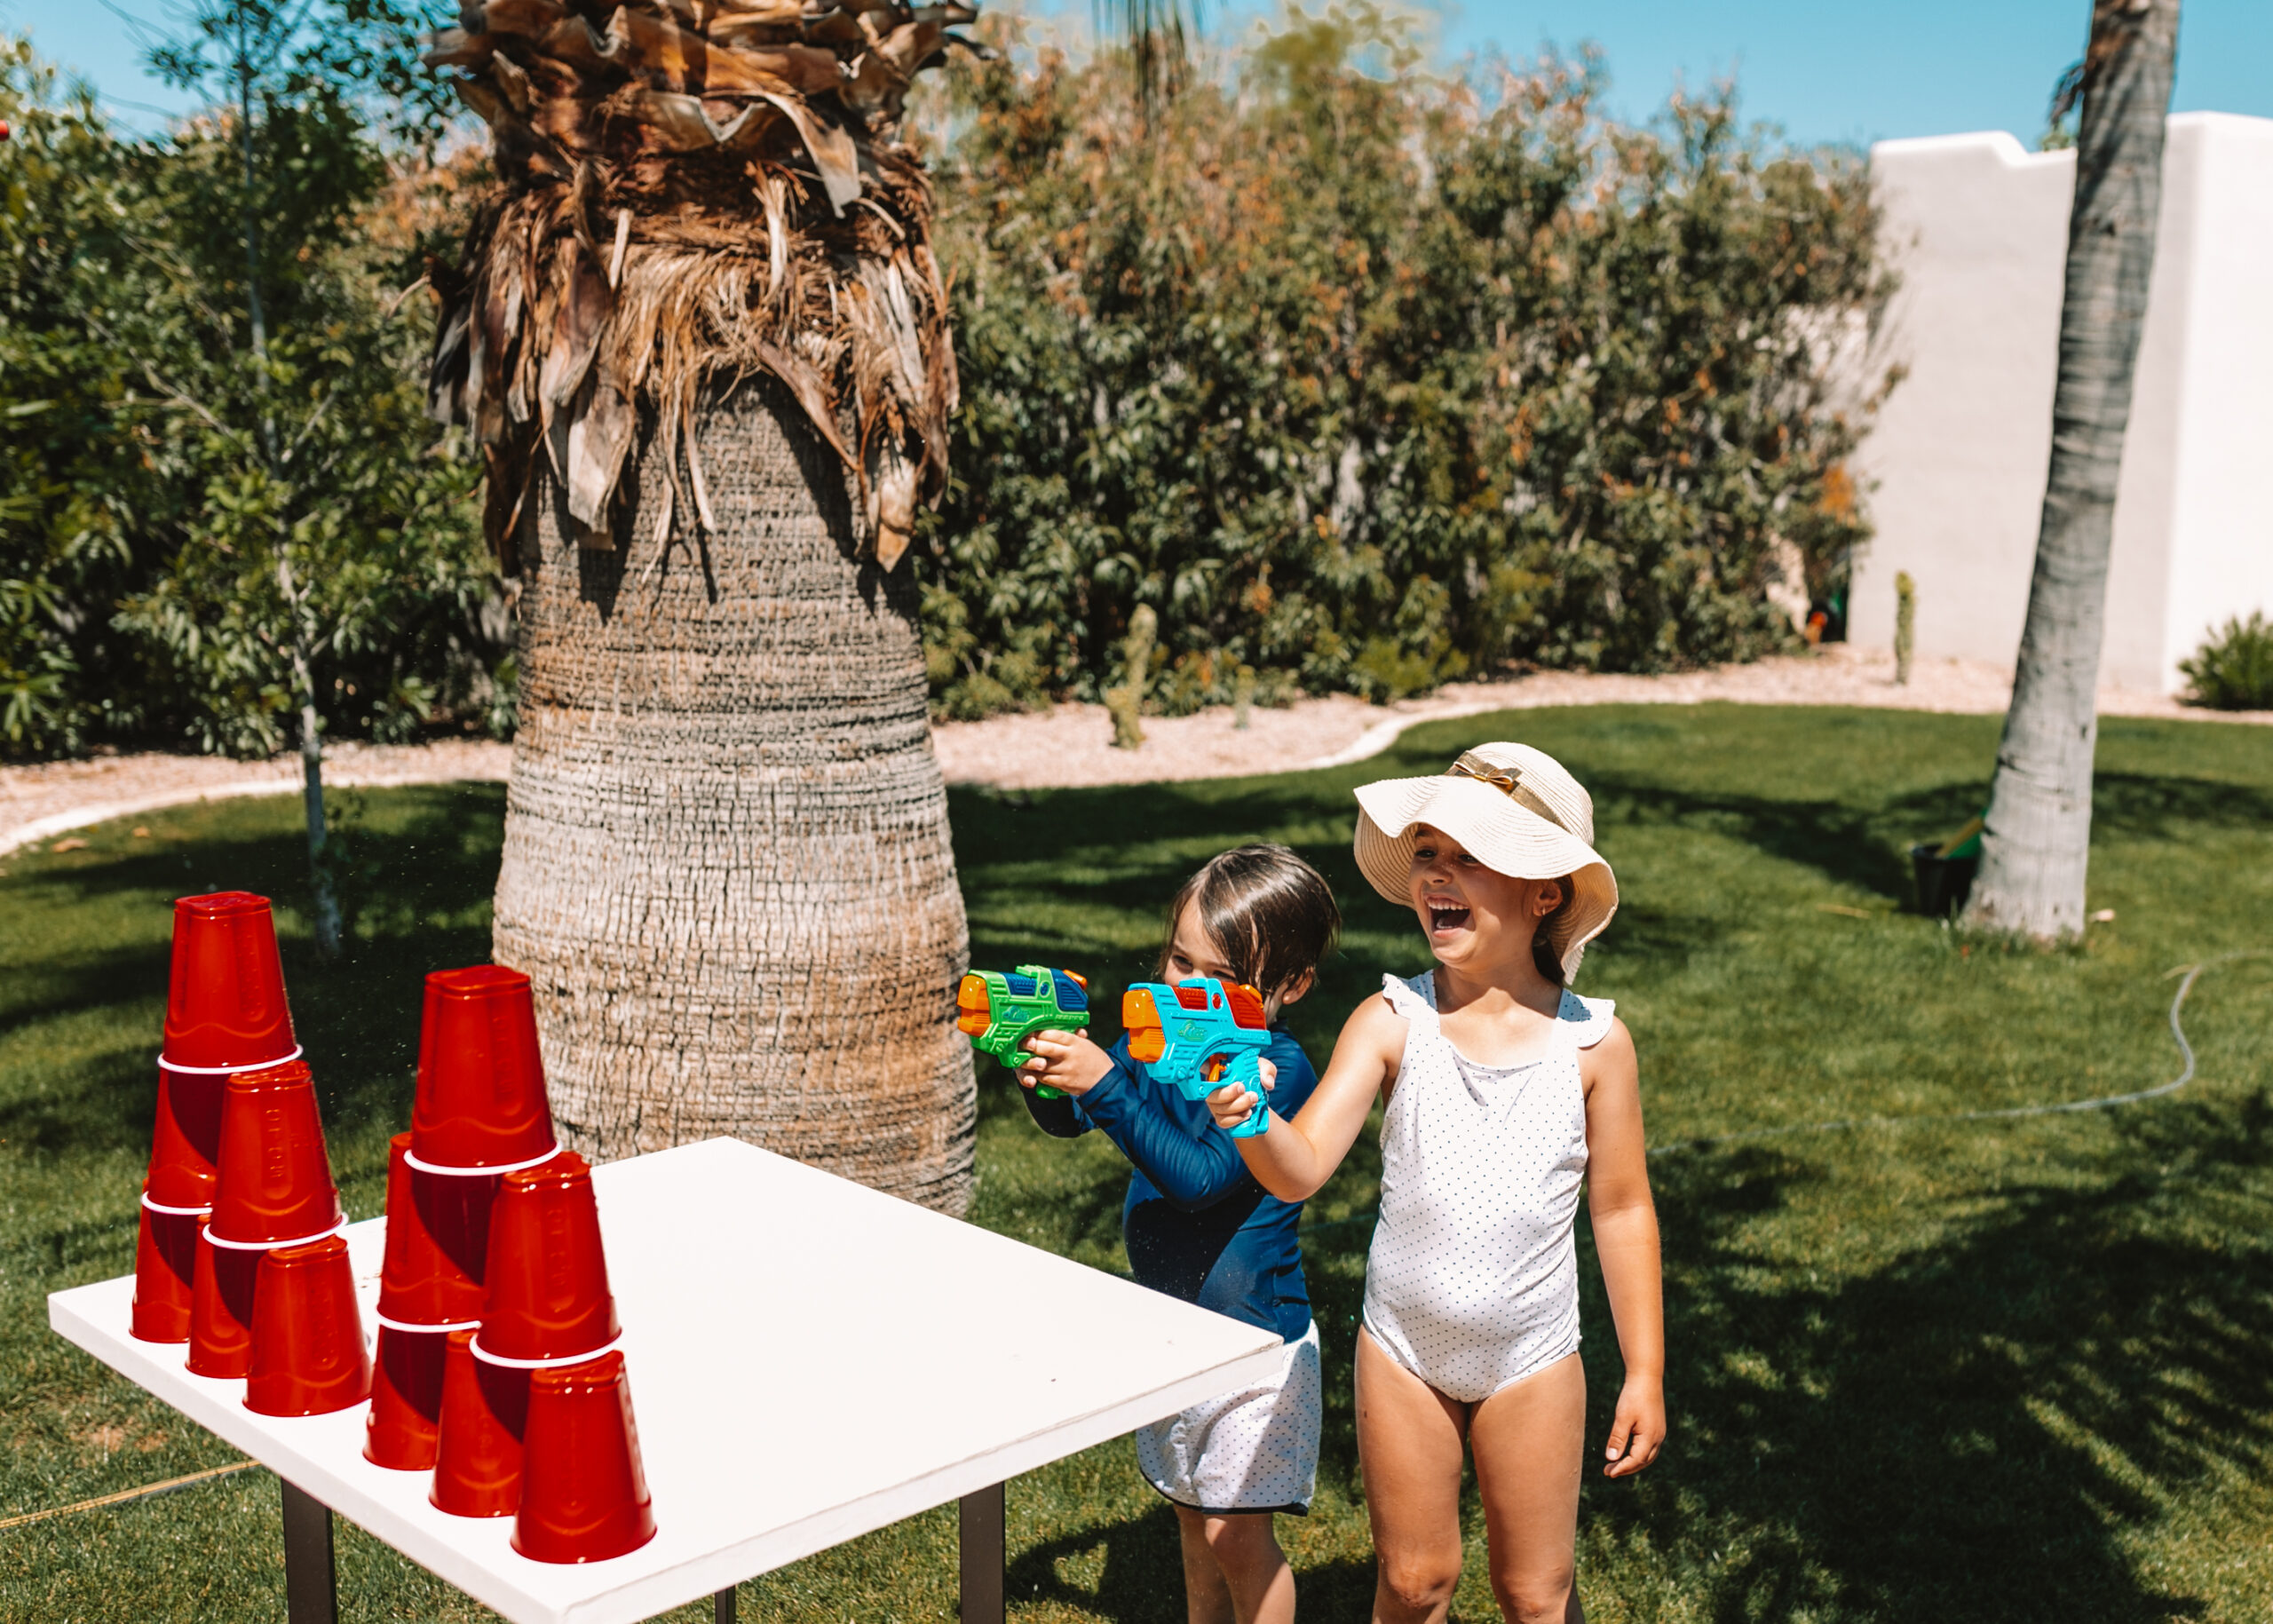 water gun cup shooting. set them up in a tower and see who can knock them all over first! #theldlhome #stayhome #watergunfun #backyardactivities